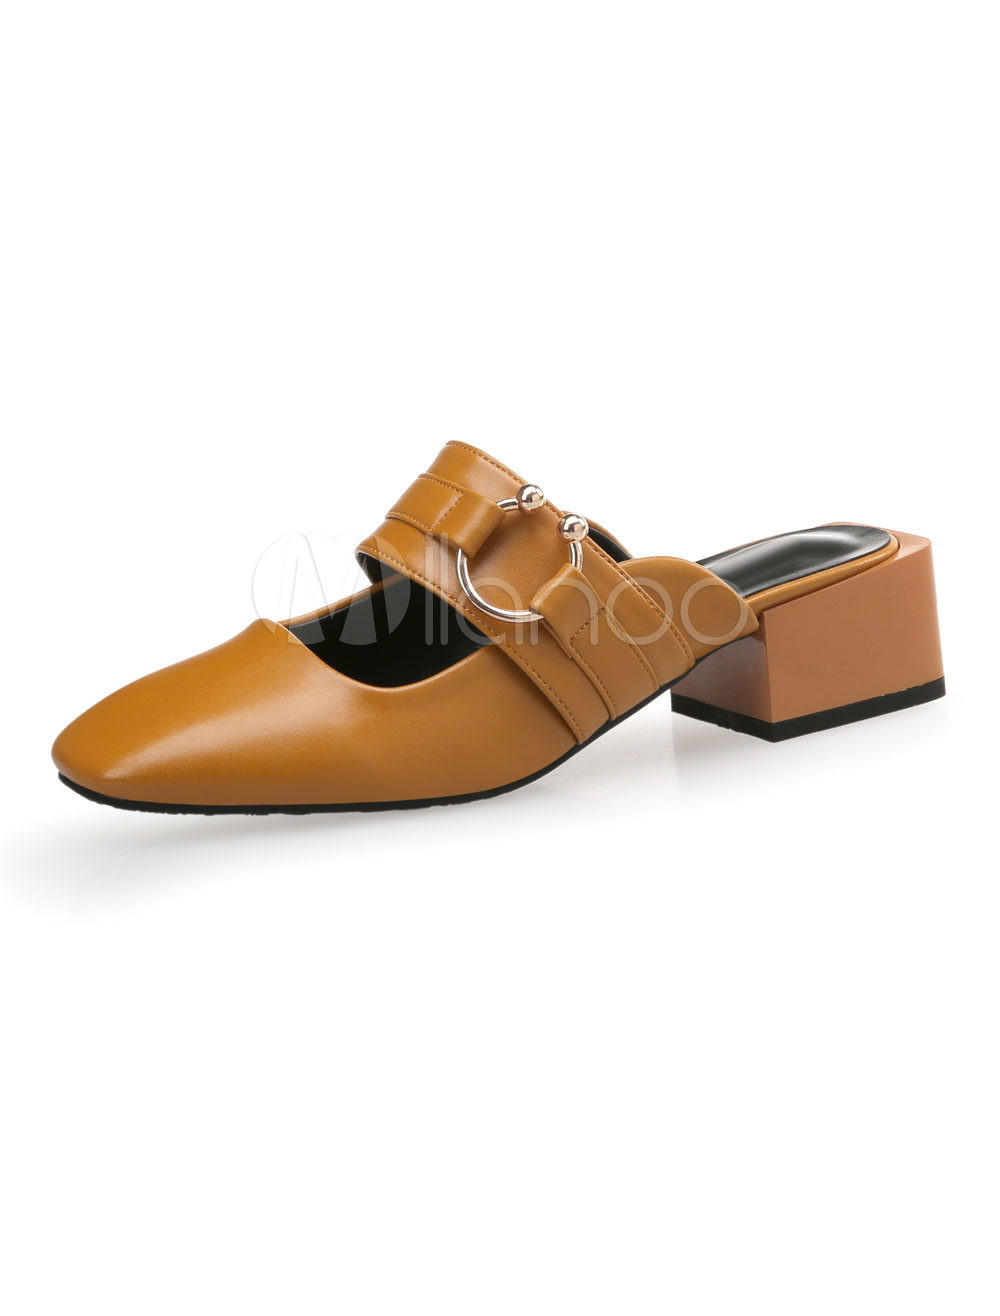 Buy Brown Mule Loafers Square Toe Metal Detail Backless Mules For Women for $27.99 in Milanoo store